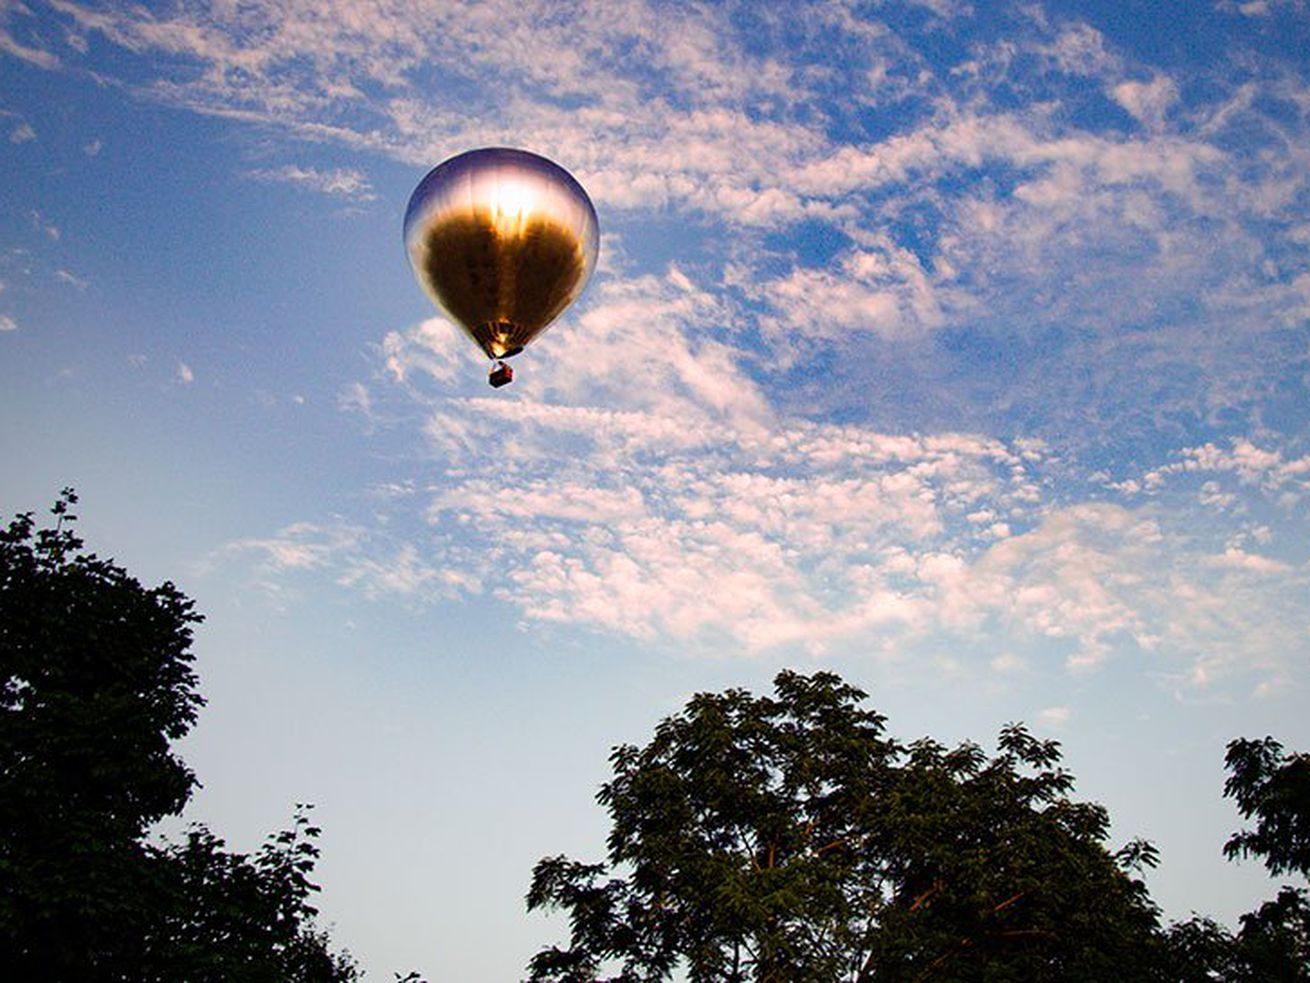 mirrored hot air balloon flying over the landscape